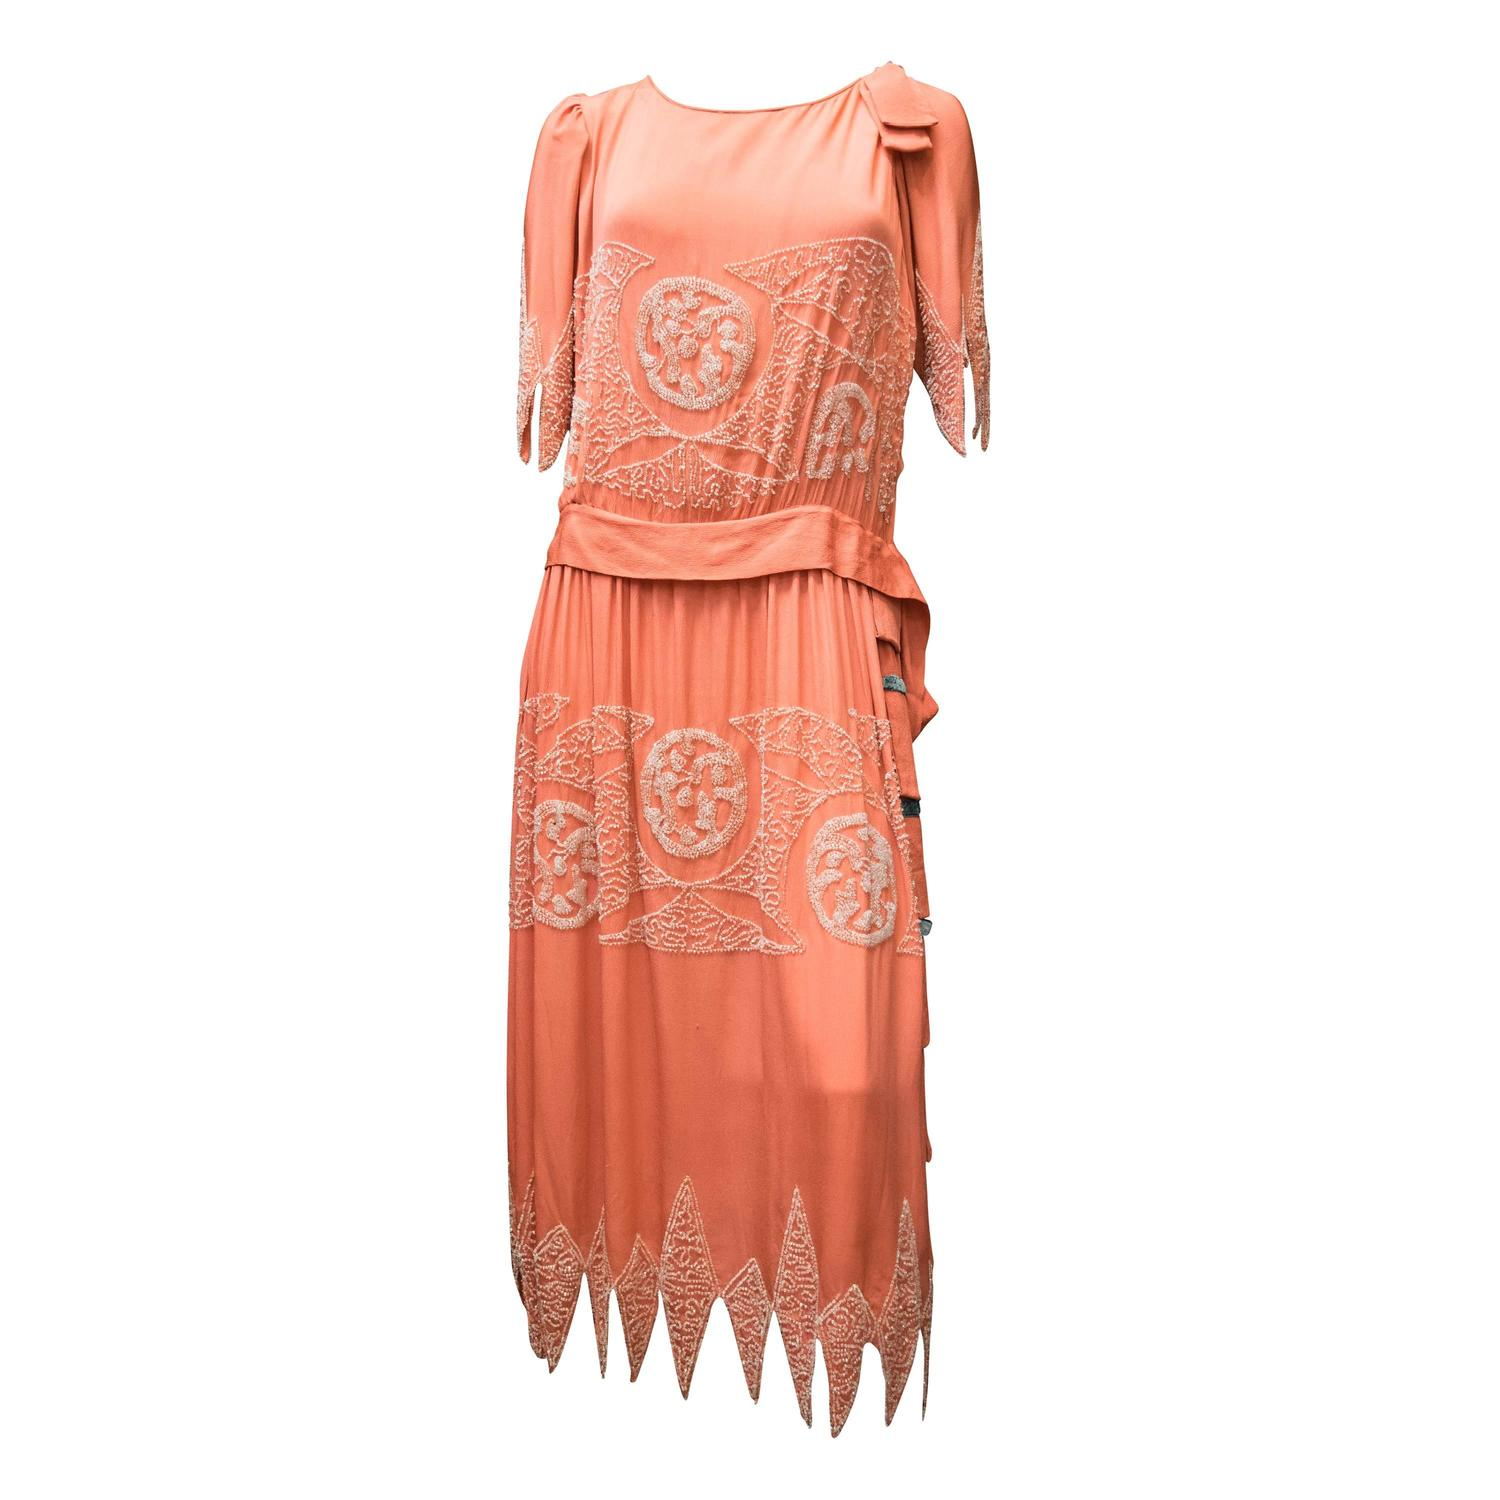 1920s pink beaded flapper dress for sale at 1stdibs